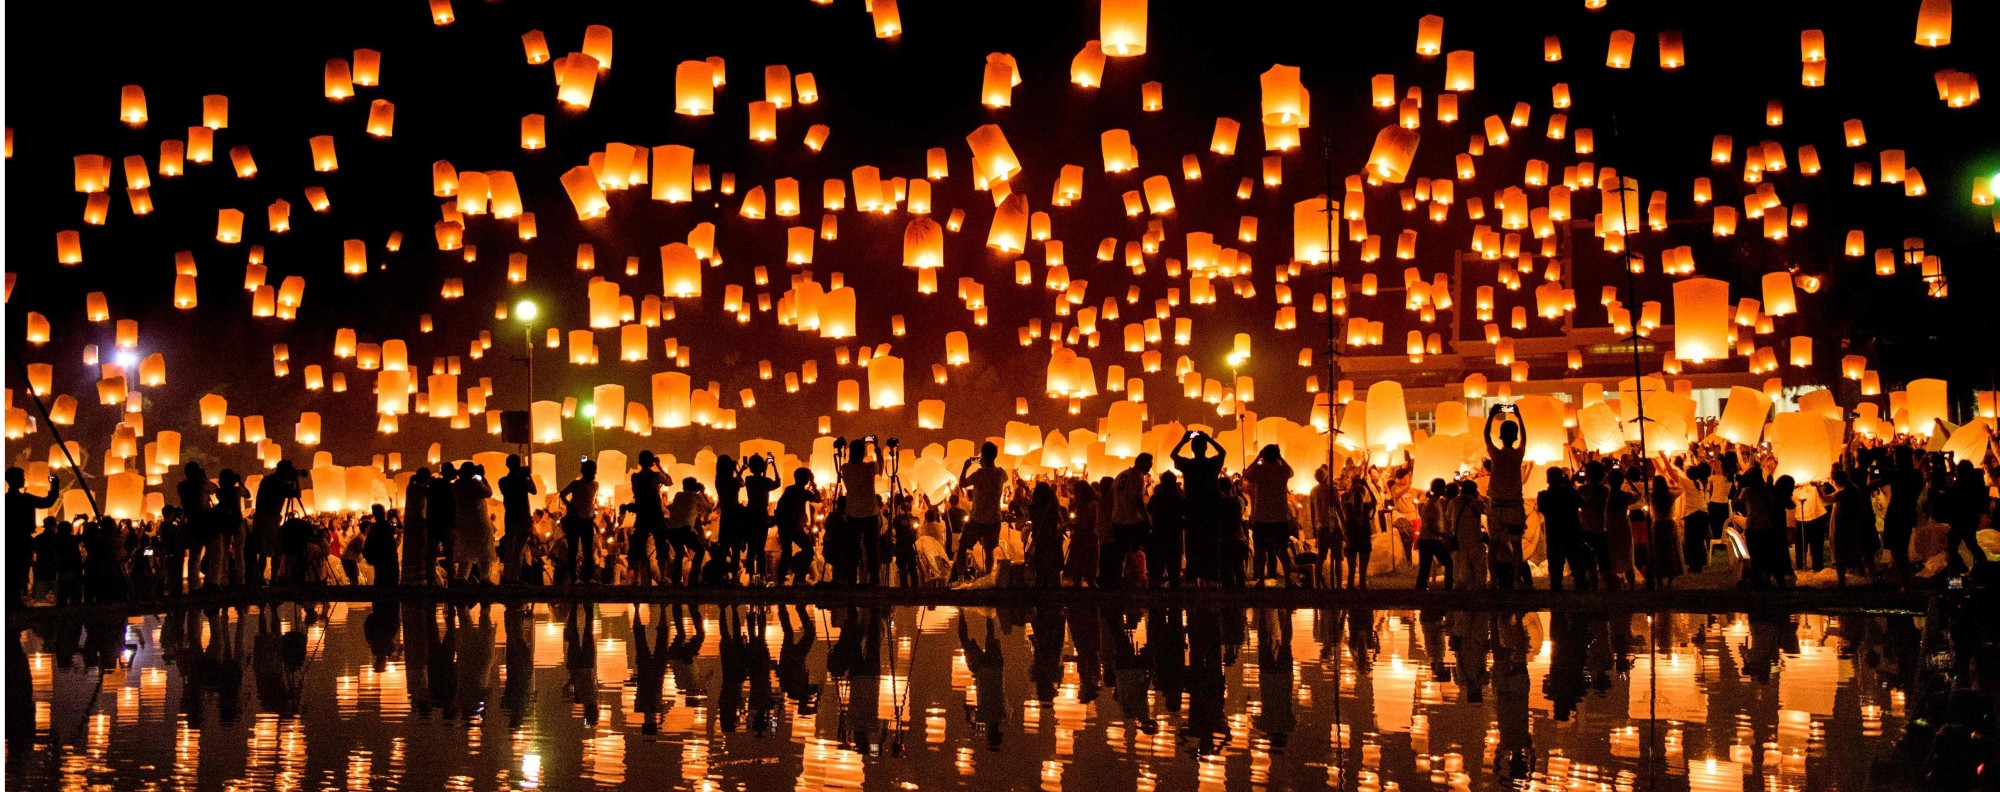 The festival of lights in Chiang Mai. Photo: AFP